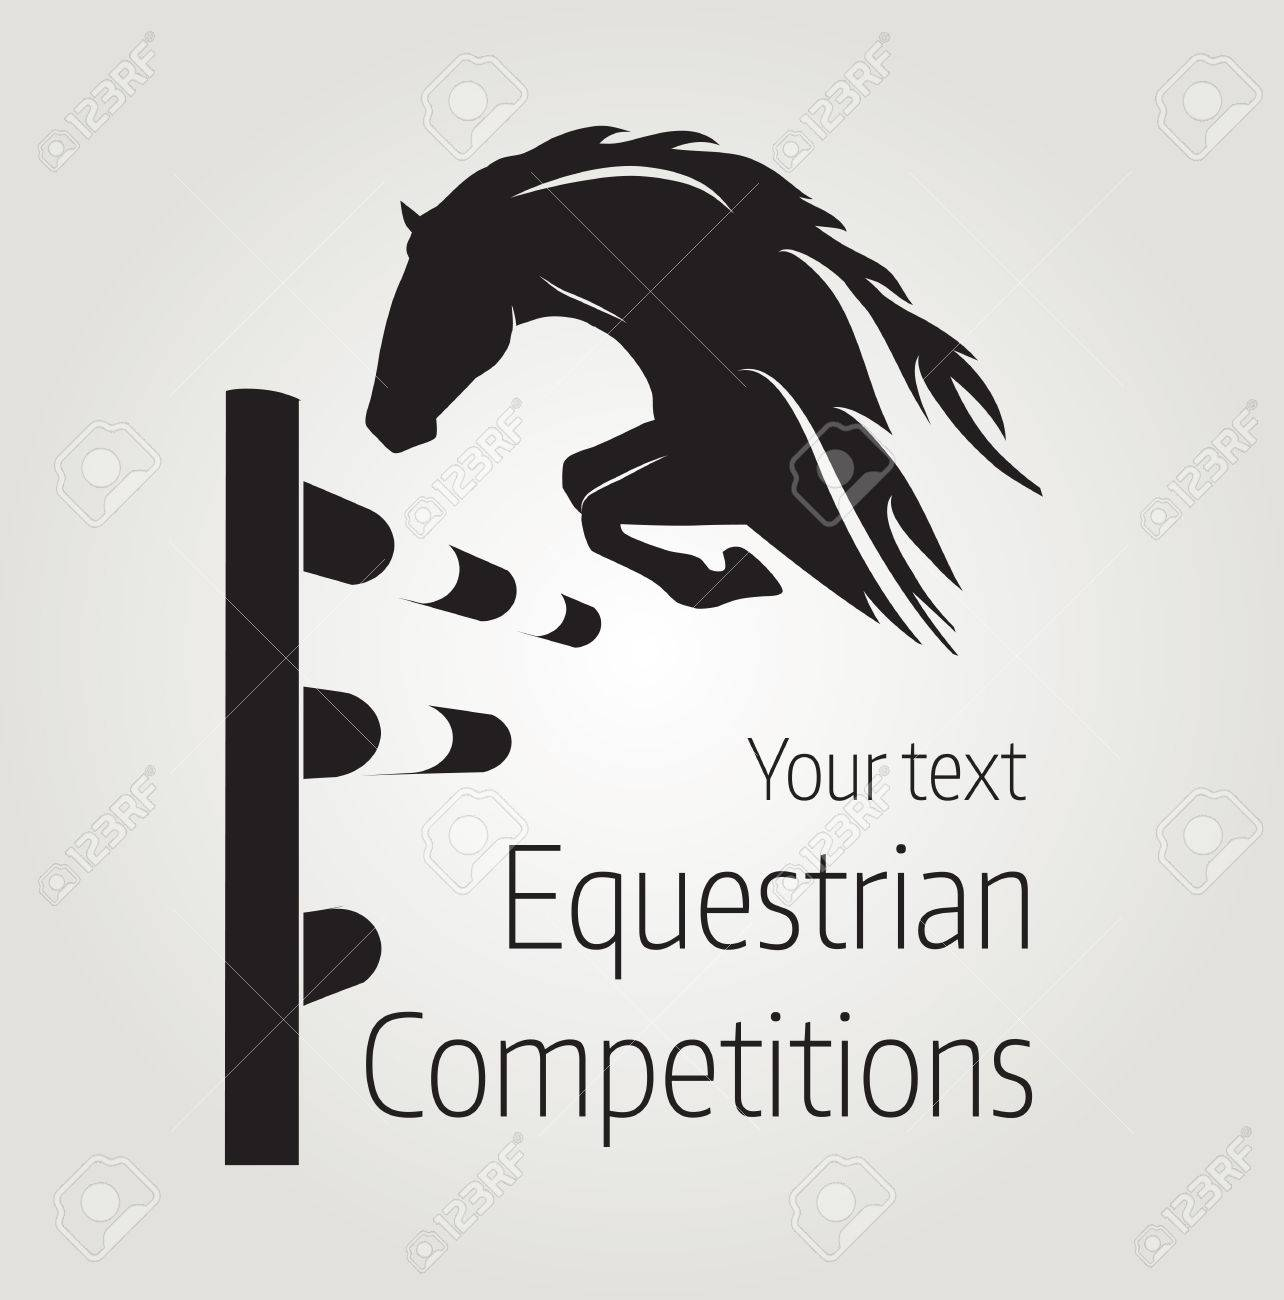 Equestrian competitions - illustration of horse - 68099752